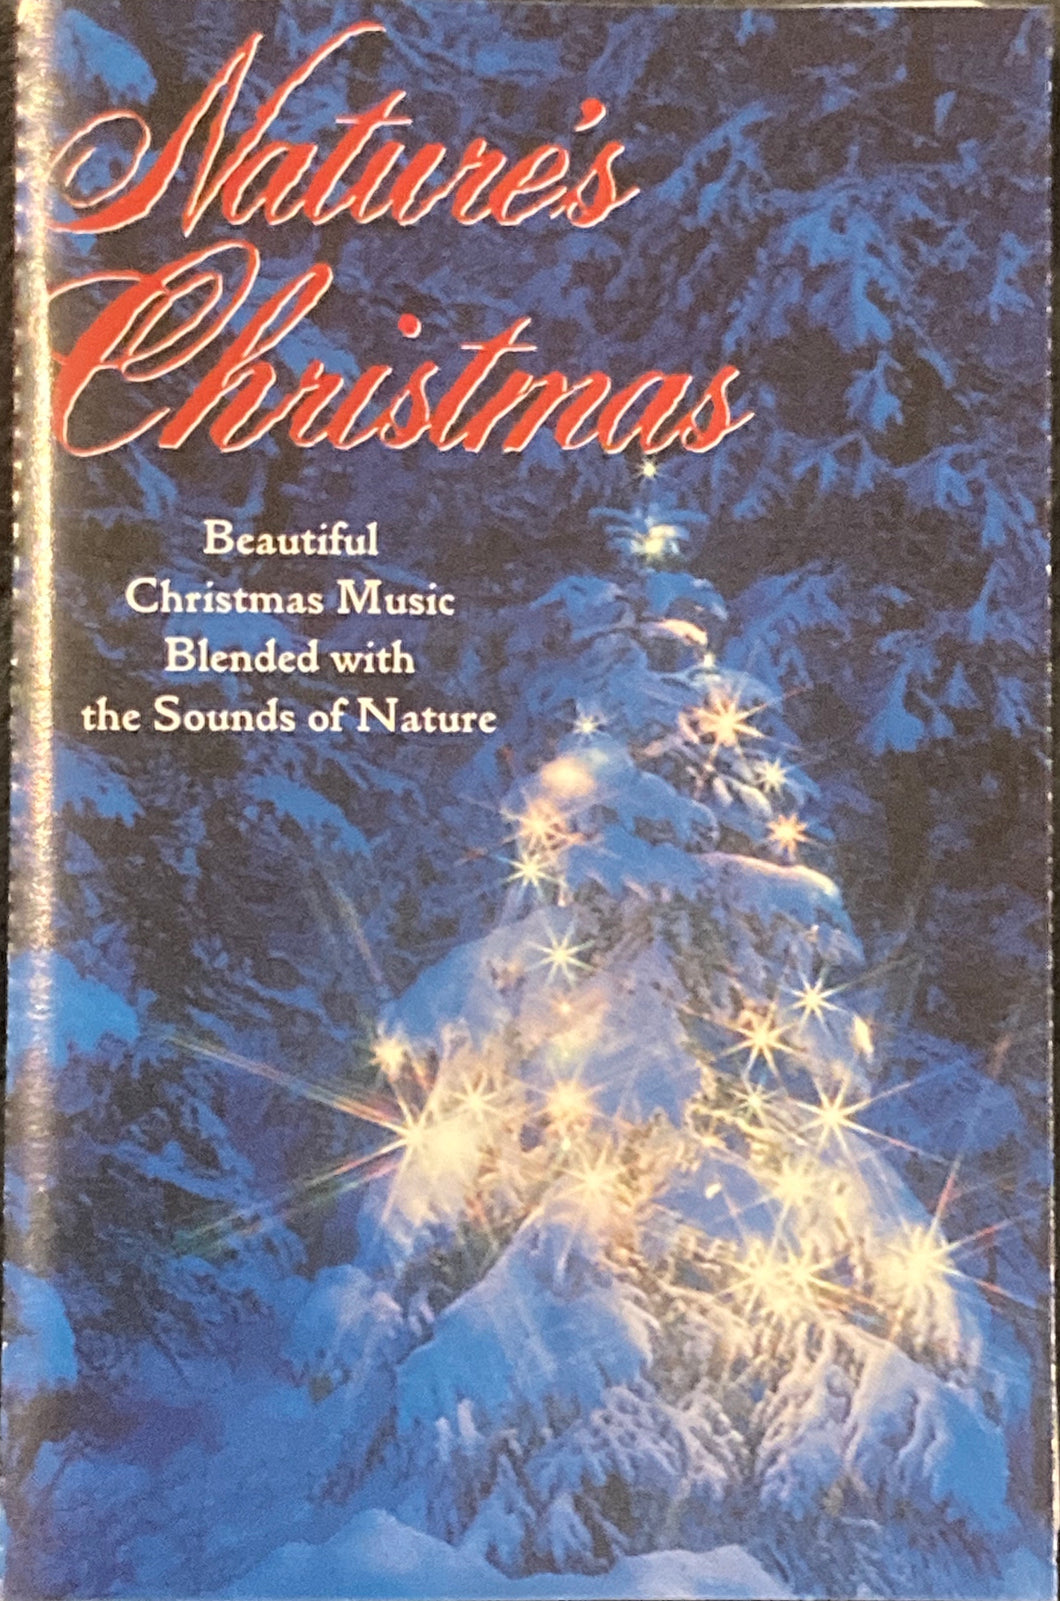 Nature's Christmas - Christmas Music + Nature Sounds Cassette VG